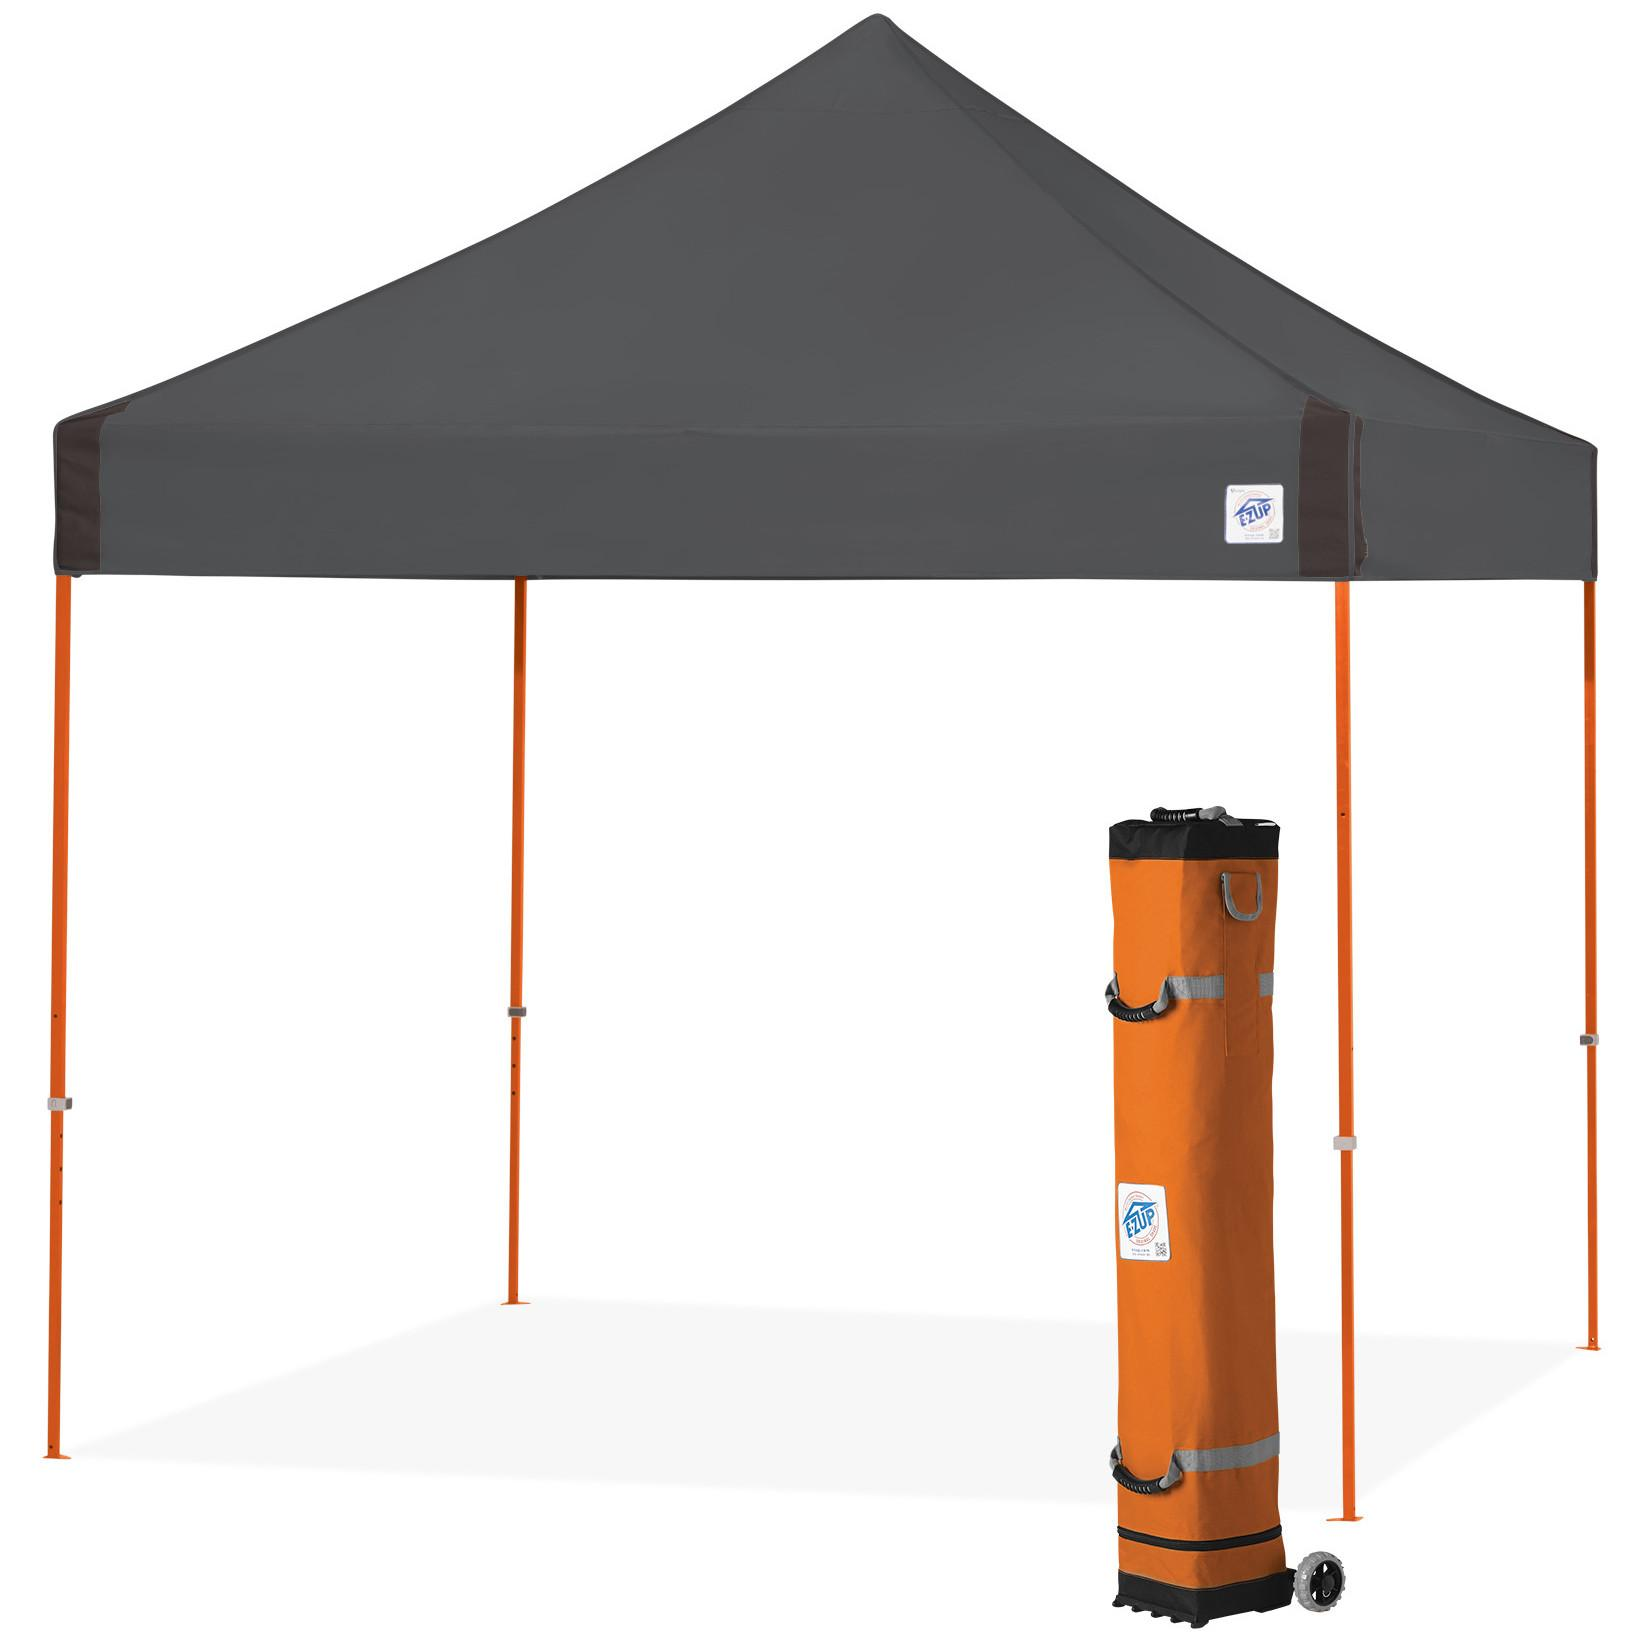 10x10 canopy beach canopy canopy red canopy e-z up ez up  sc 1 st  Amazon.ca & E-Z UP Vantage Instant Shelter Canopy 10 x 10-Feet Steel Grey ...